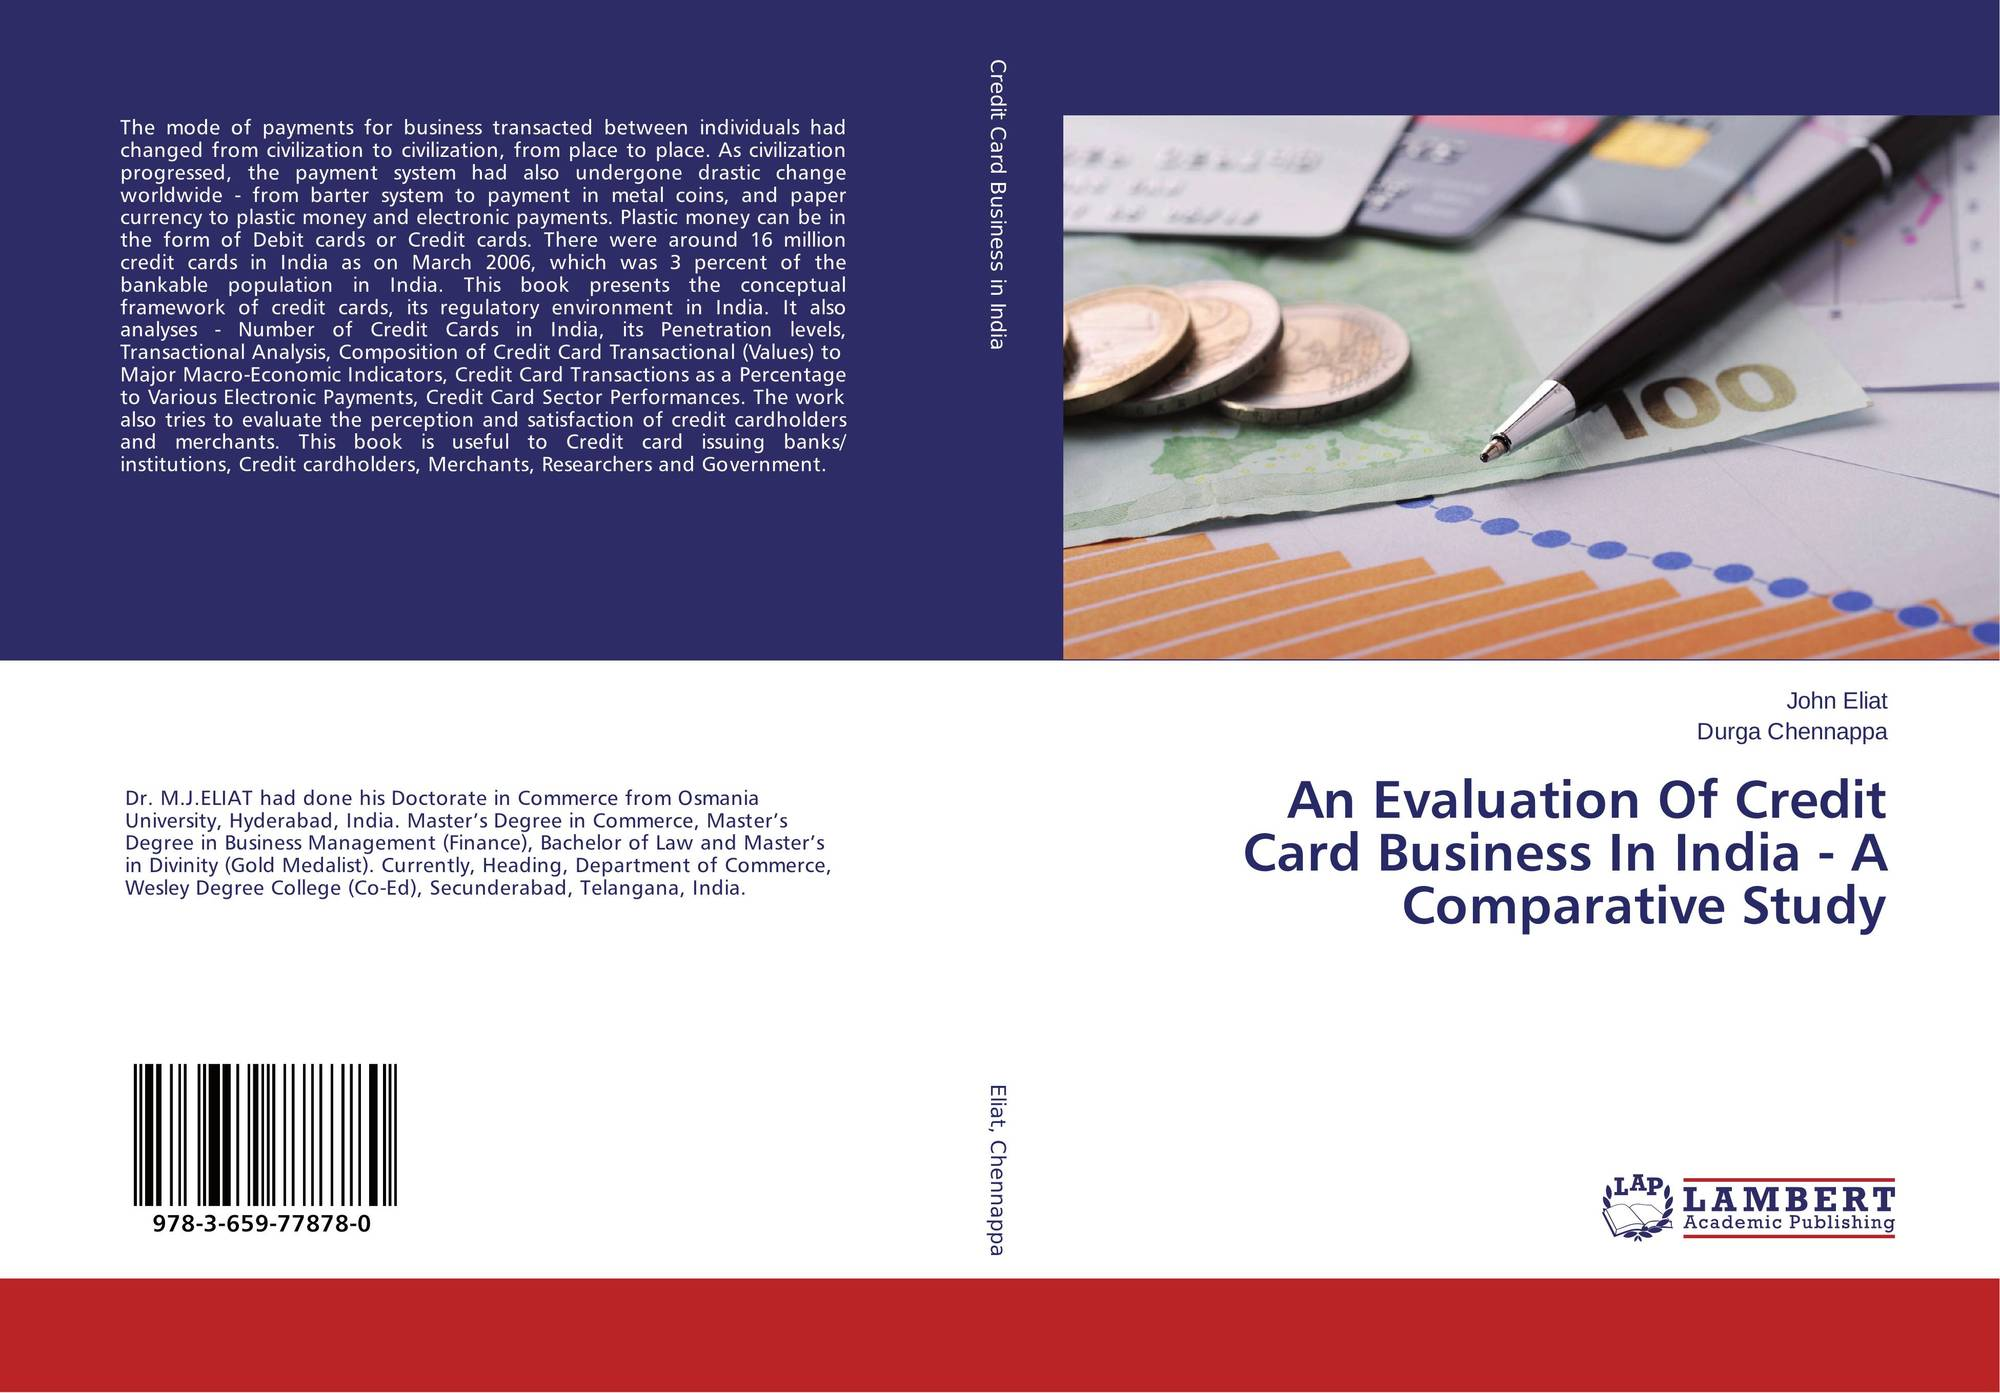 An Evaluation Of Credit Card Business In India - A Comparative Study ...